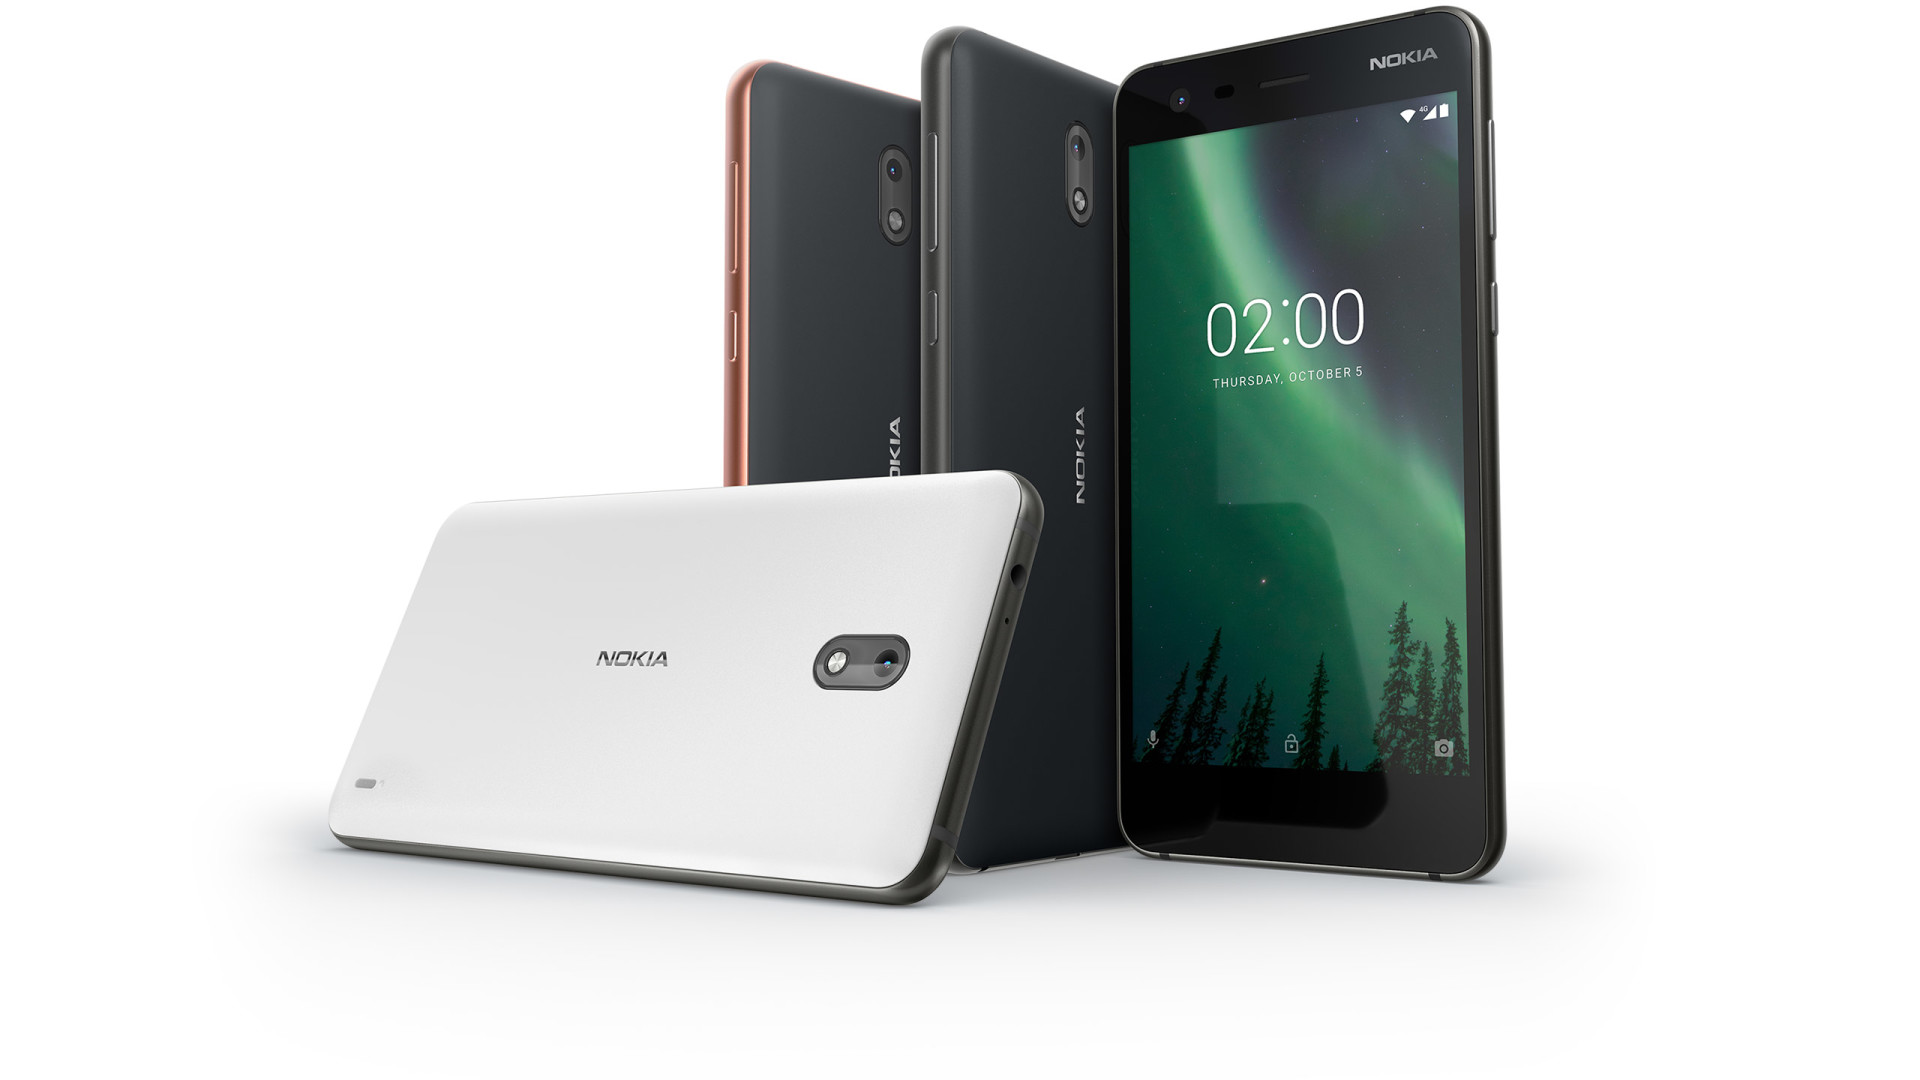 nokia 2 the design - Nokia 2 Announced, Promises 2 Days of Battery Life